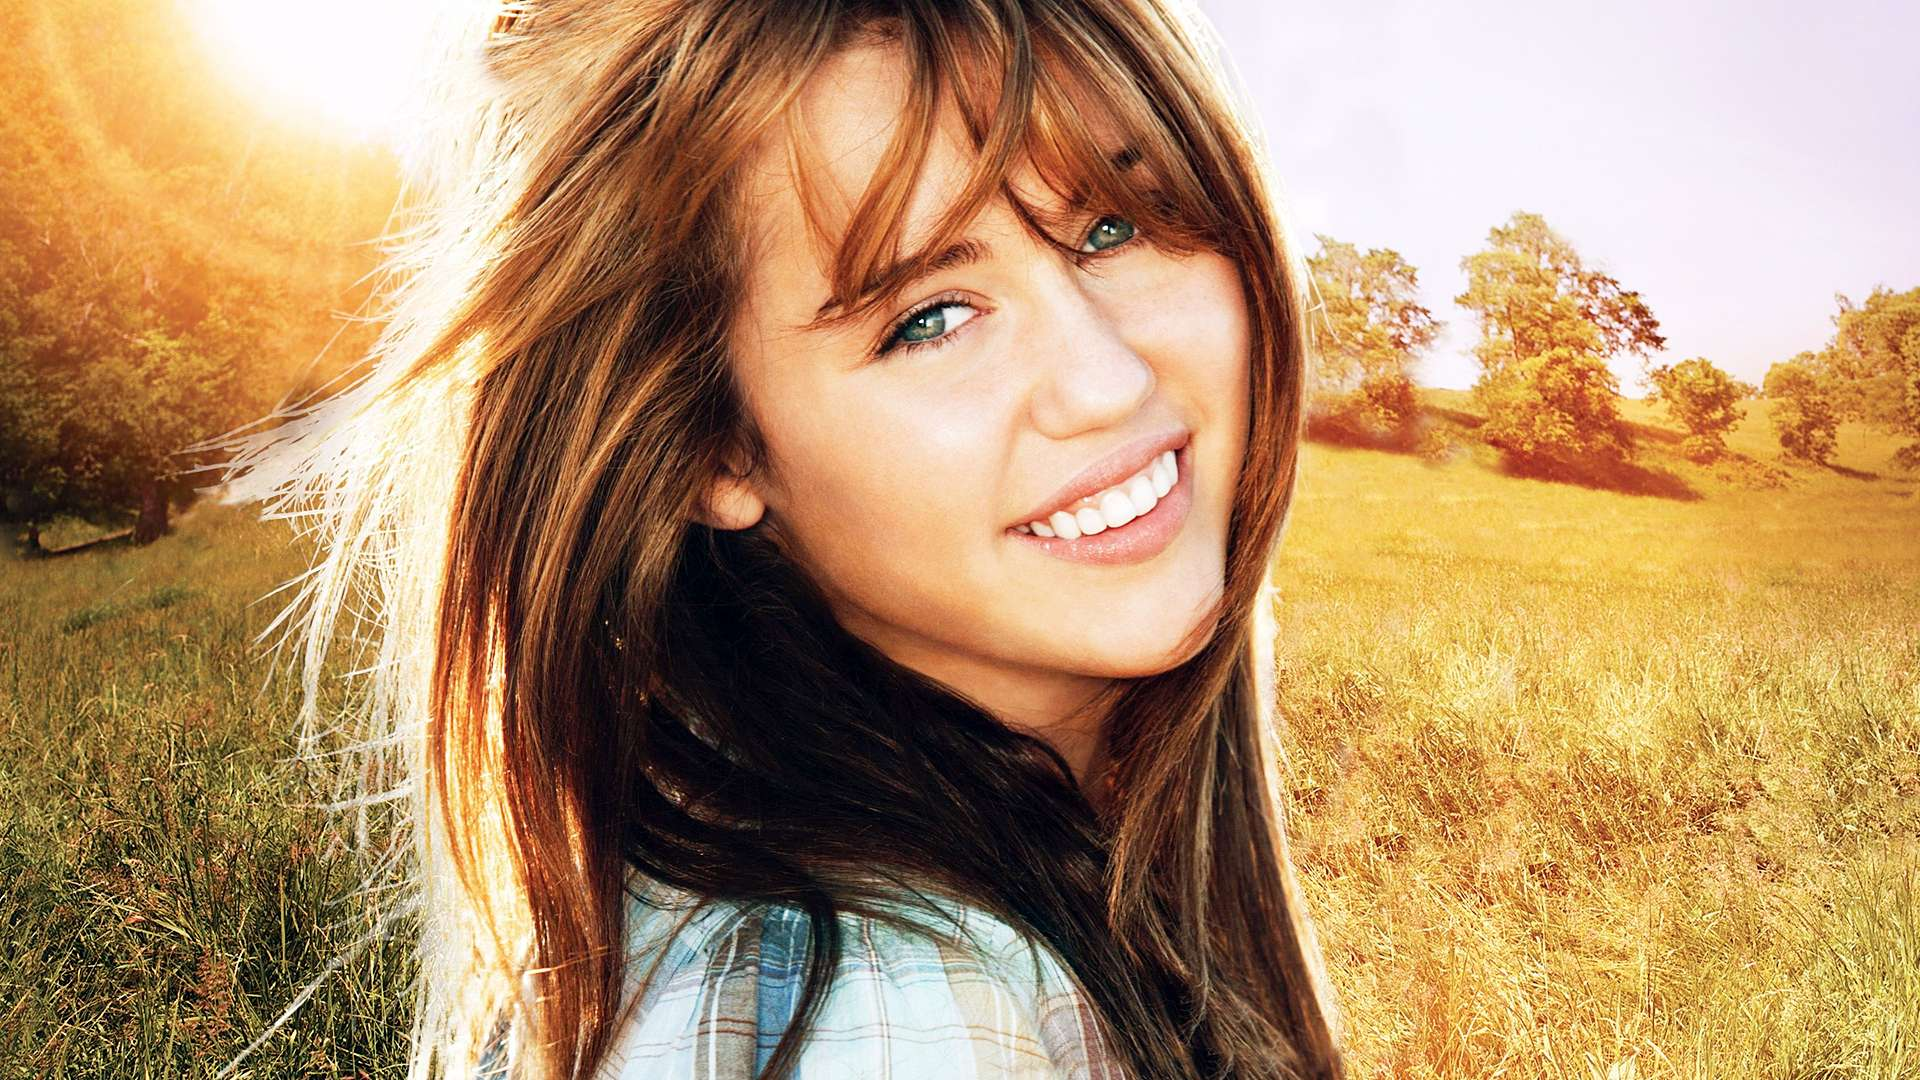 The Best Of Both Worlds av Hannah Montana